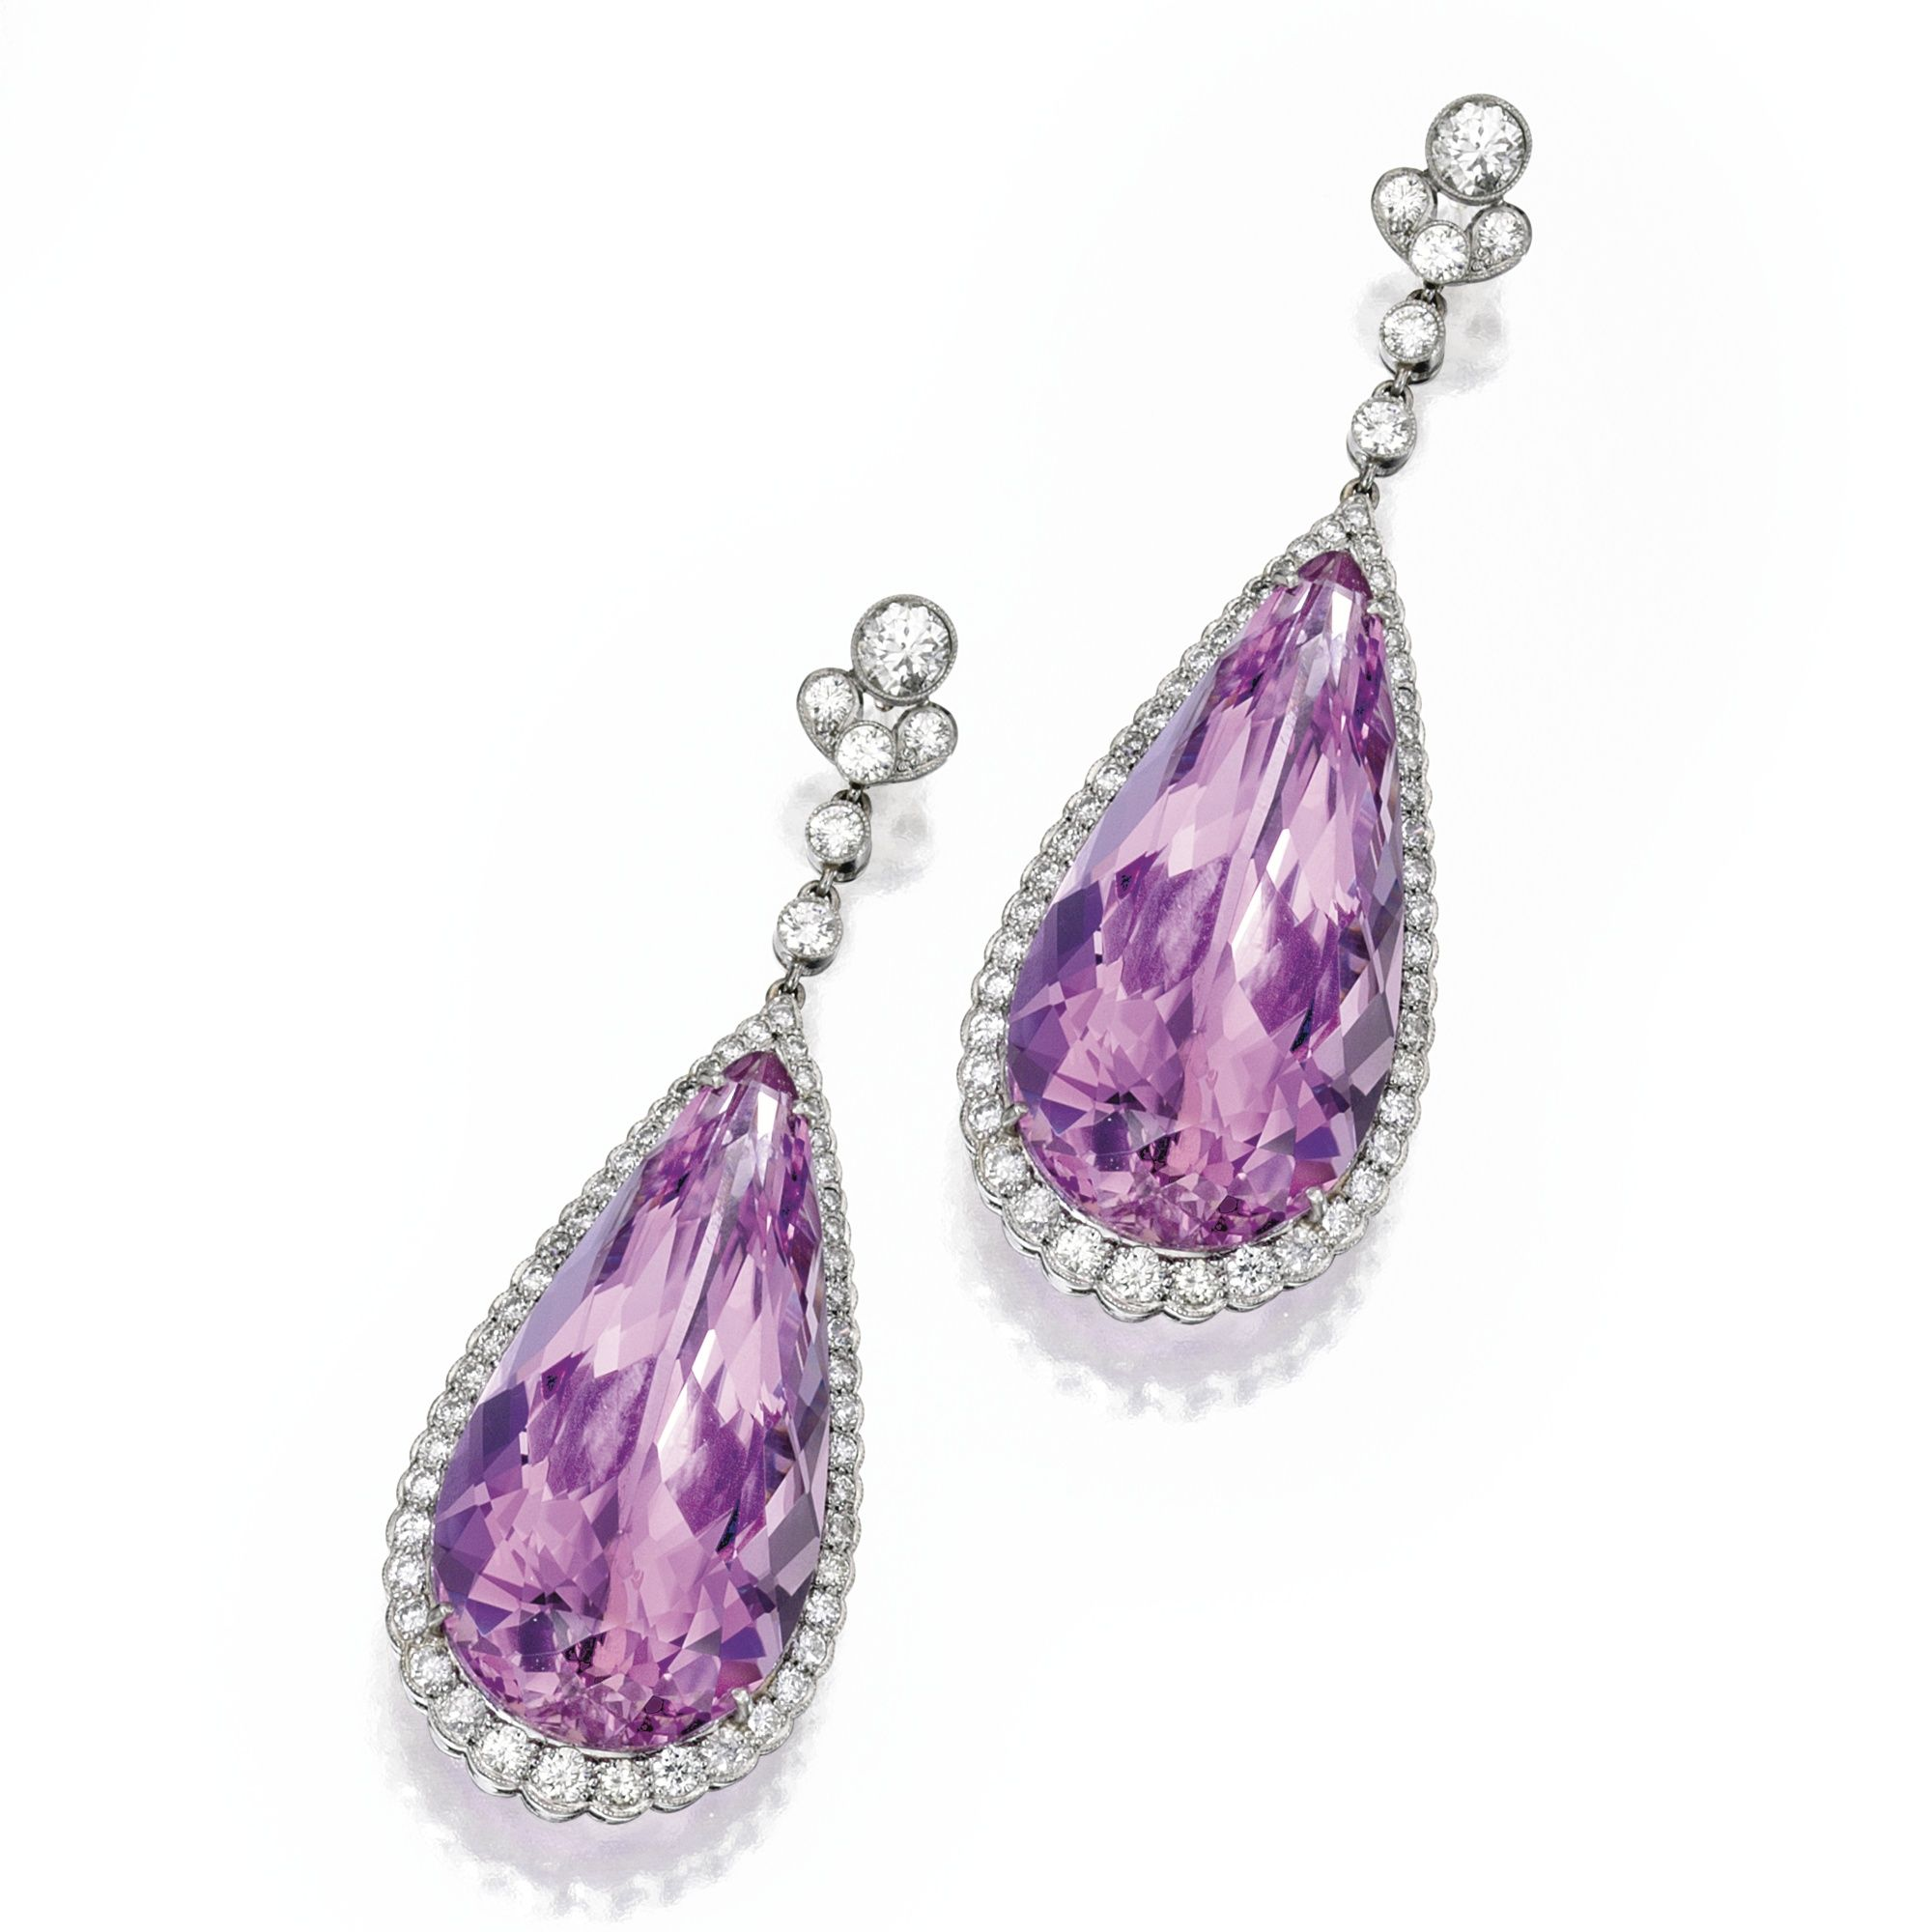 products kunzite ii earrings gabrielle jewelry flourite dubrul maja ef